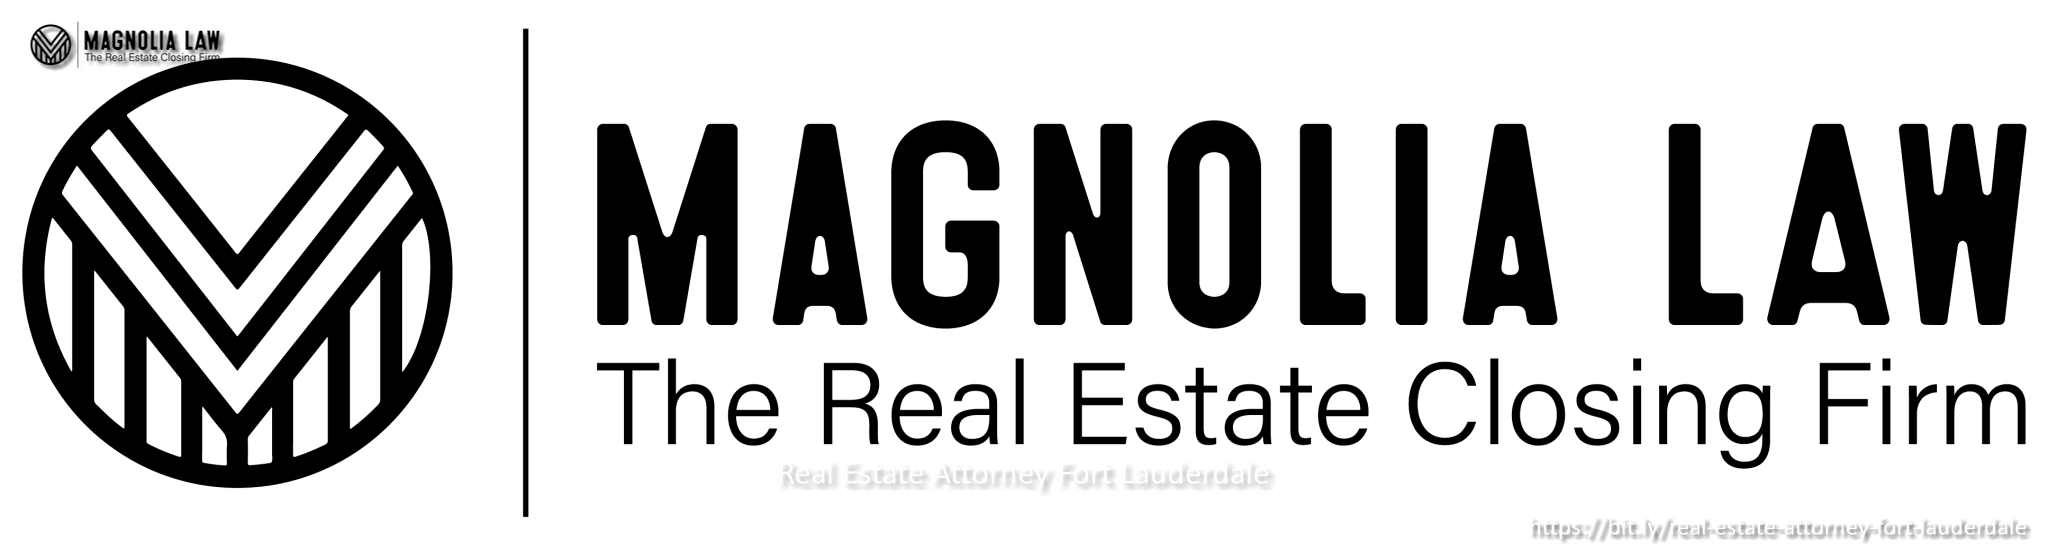 Magnolia Law Highlights the Traits of a Reliable Real Estate Lawyer